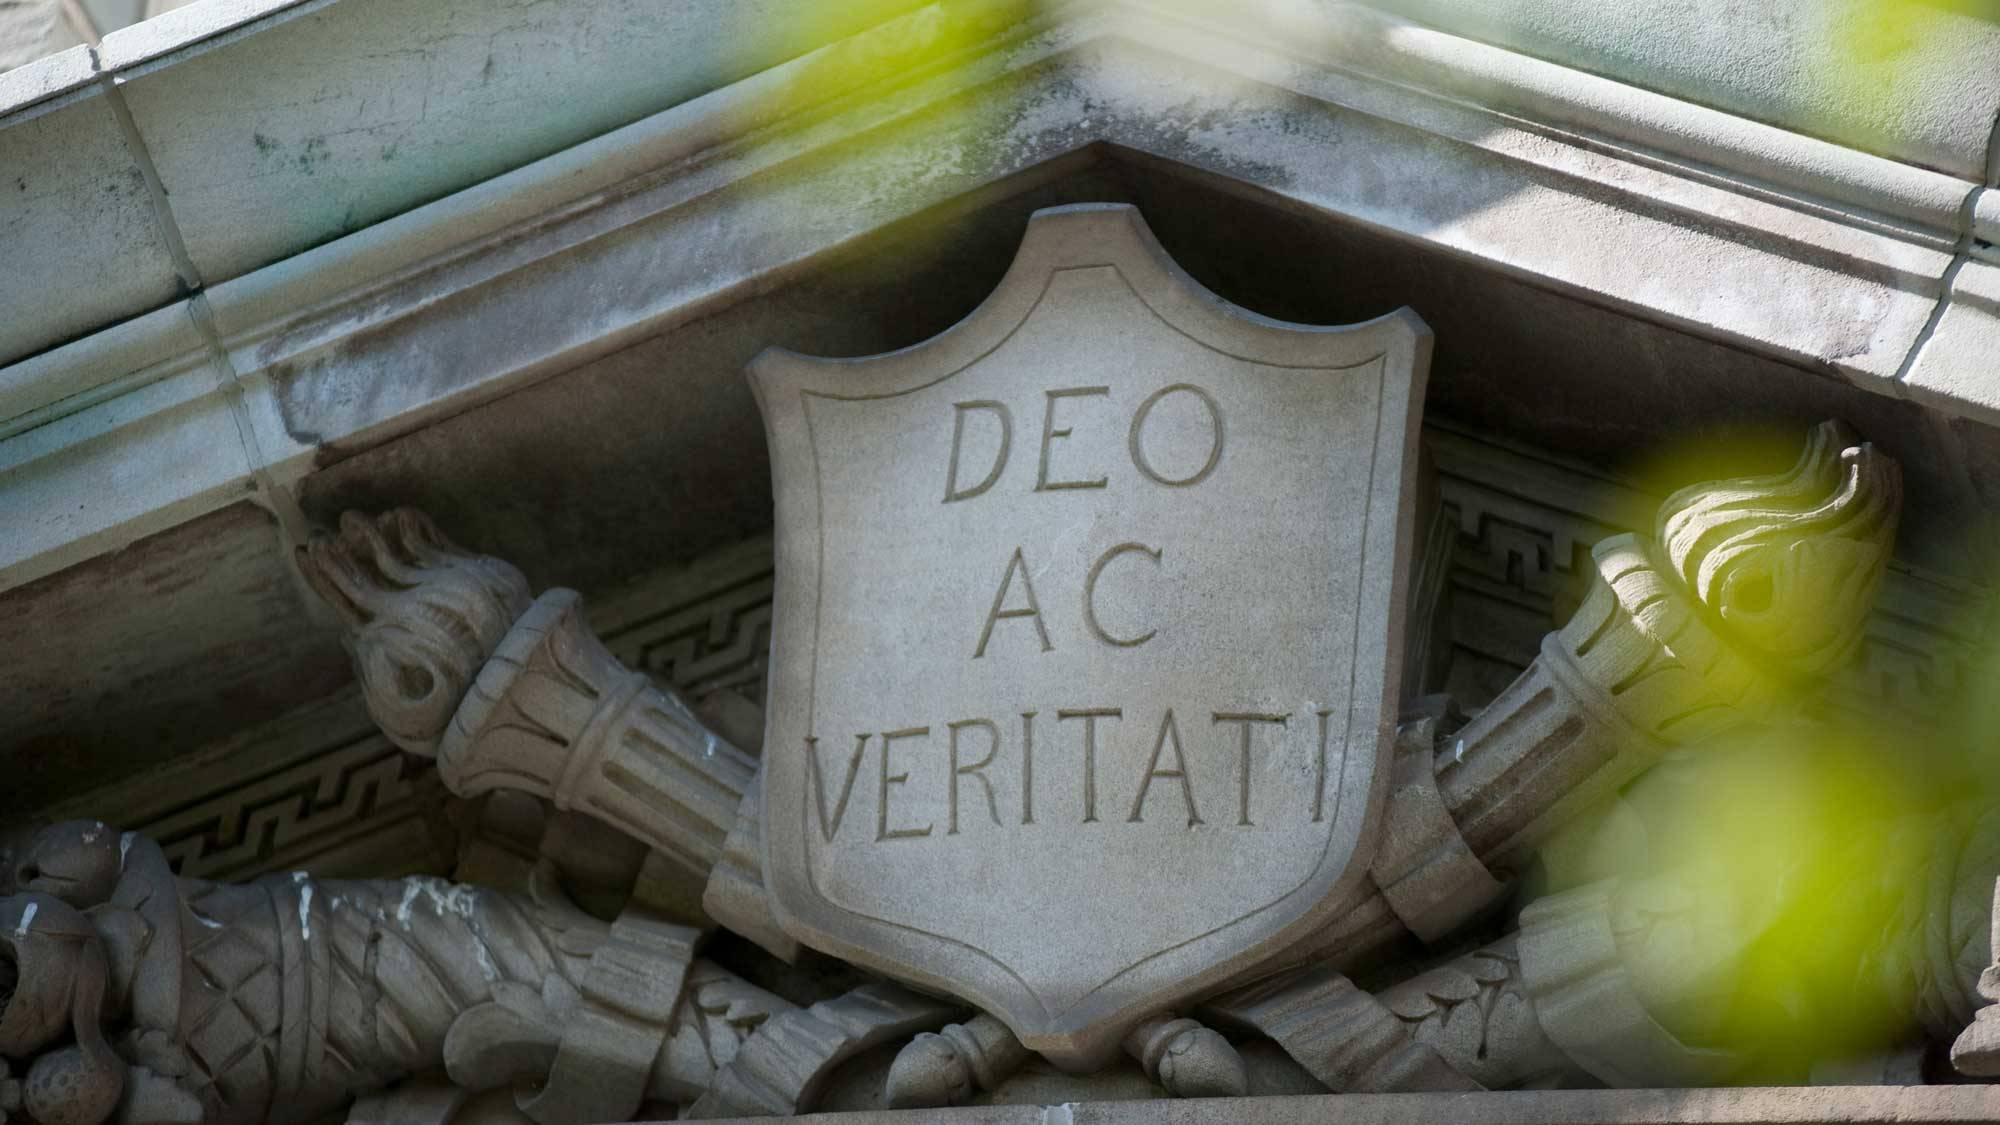 Deo Ac Veritati carved in stone shield